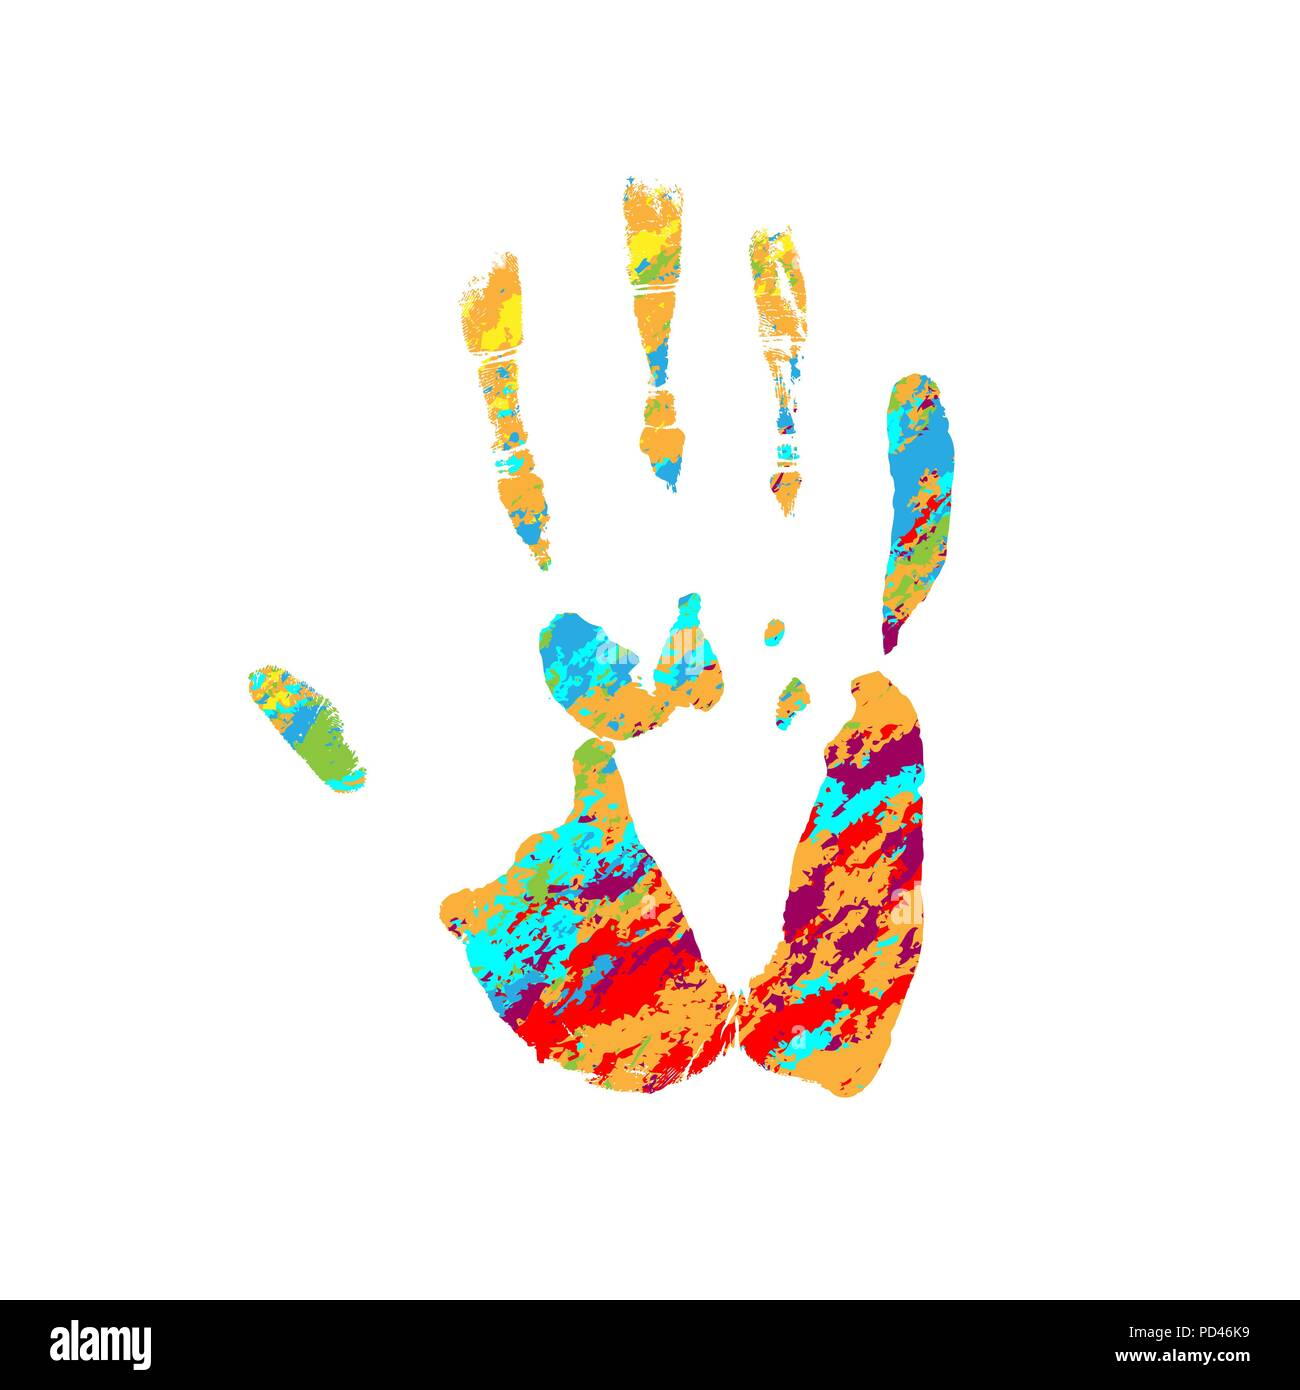 Grunge human hand different colors isolated on white background - Stock Vector